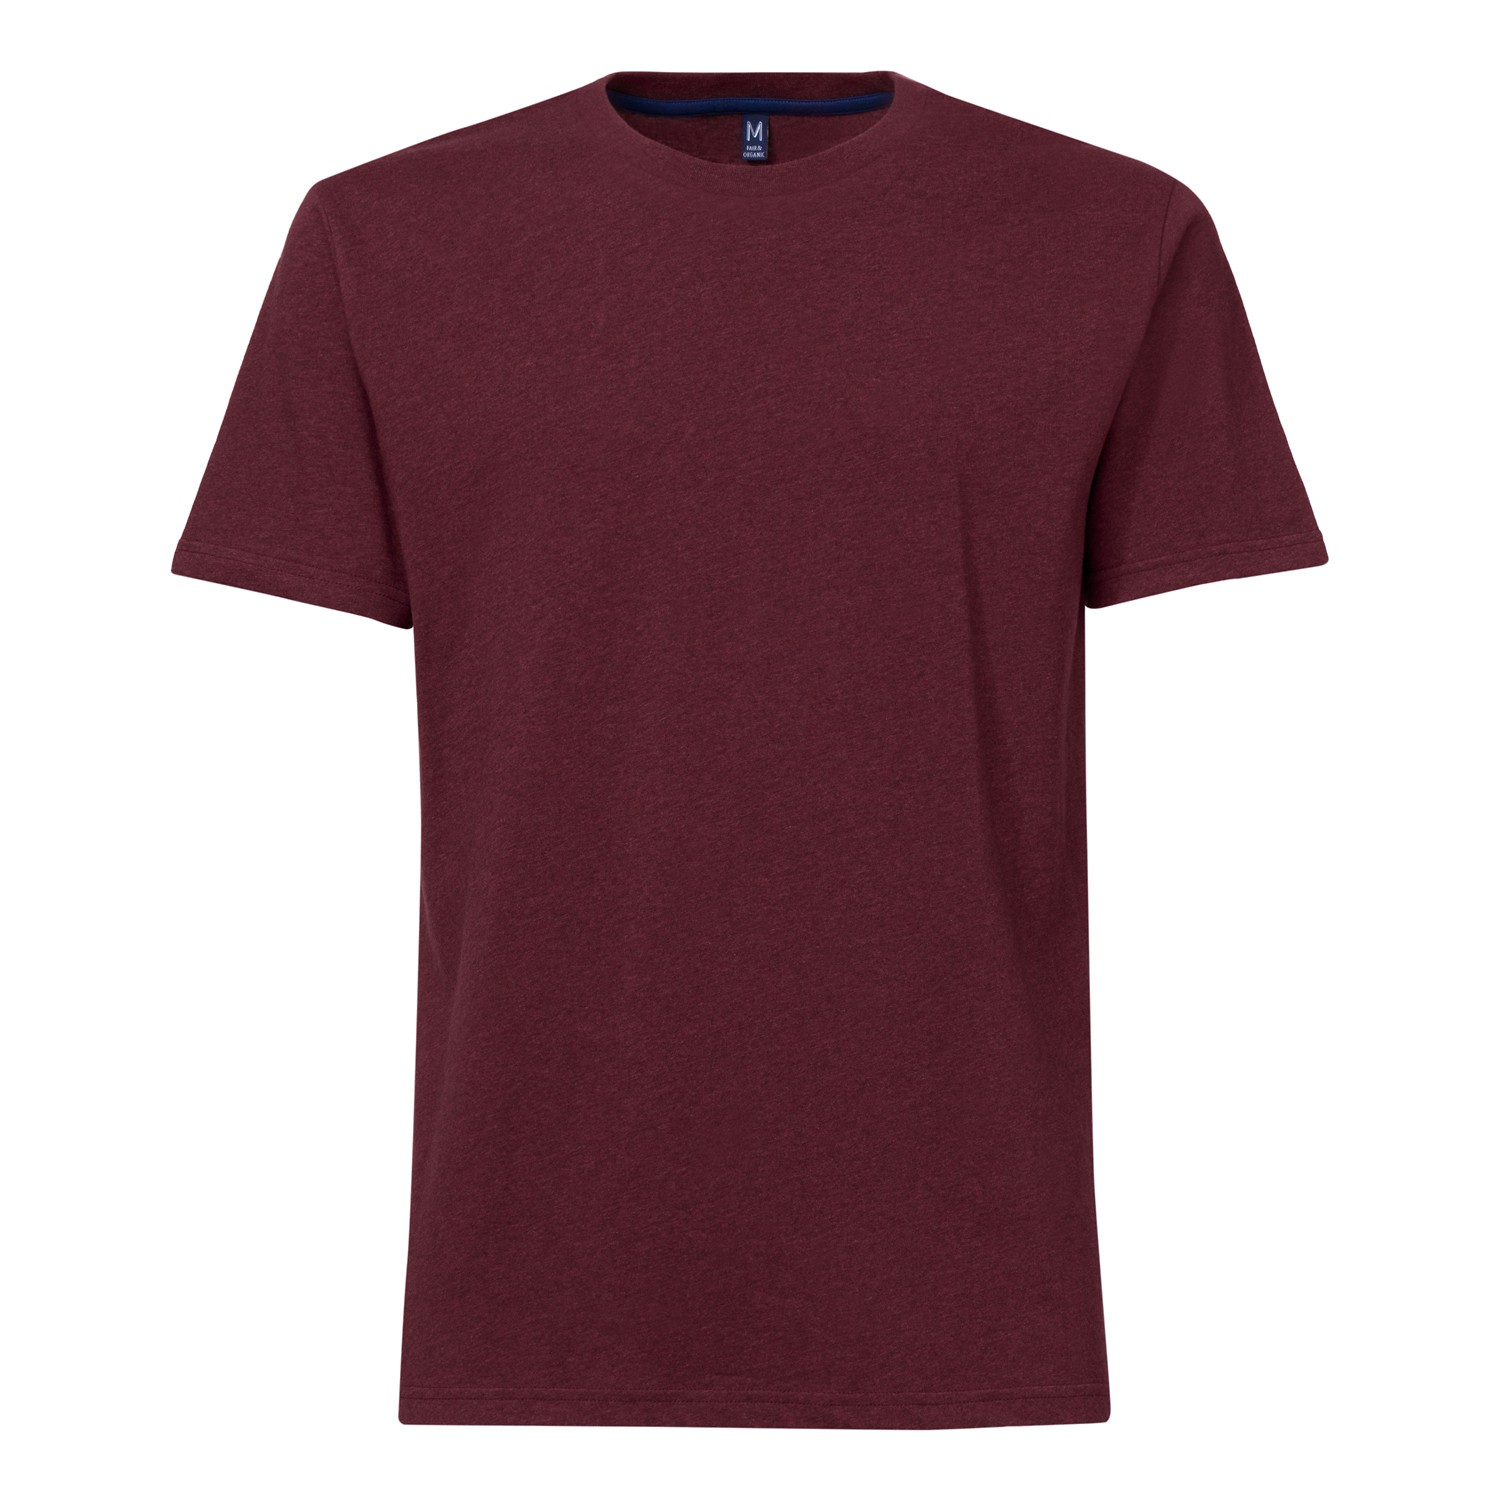 TT02 T-Shirt Dark Red Melange GOTS & Fairtrade